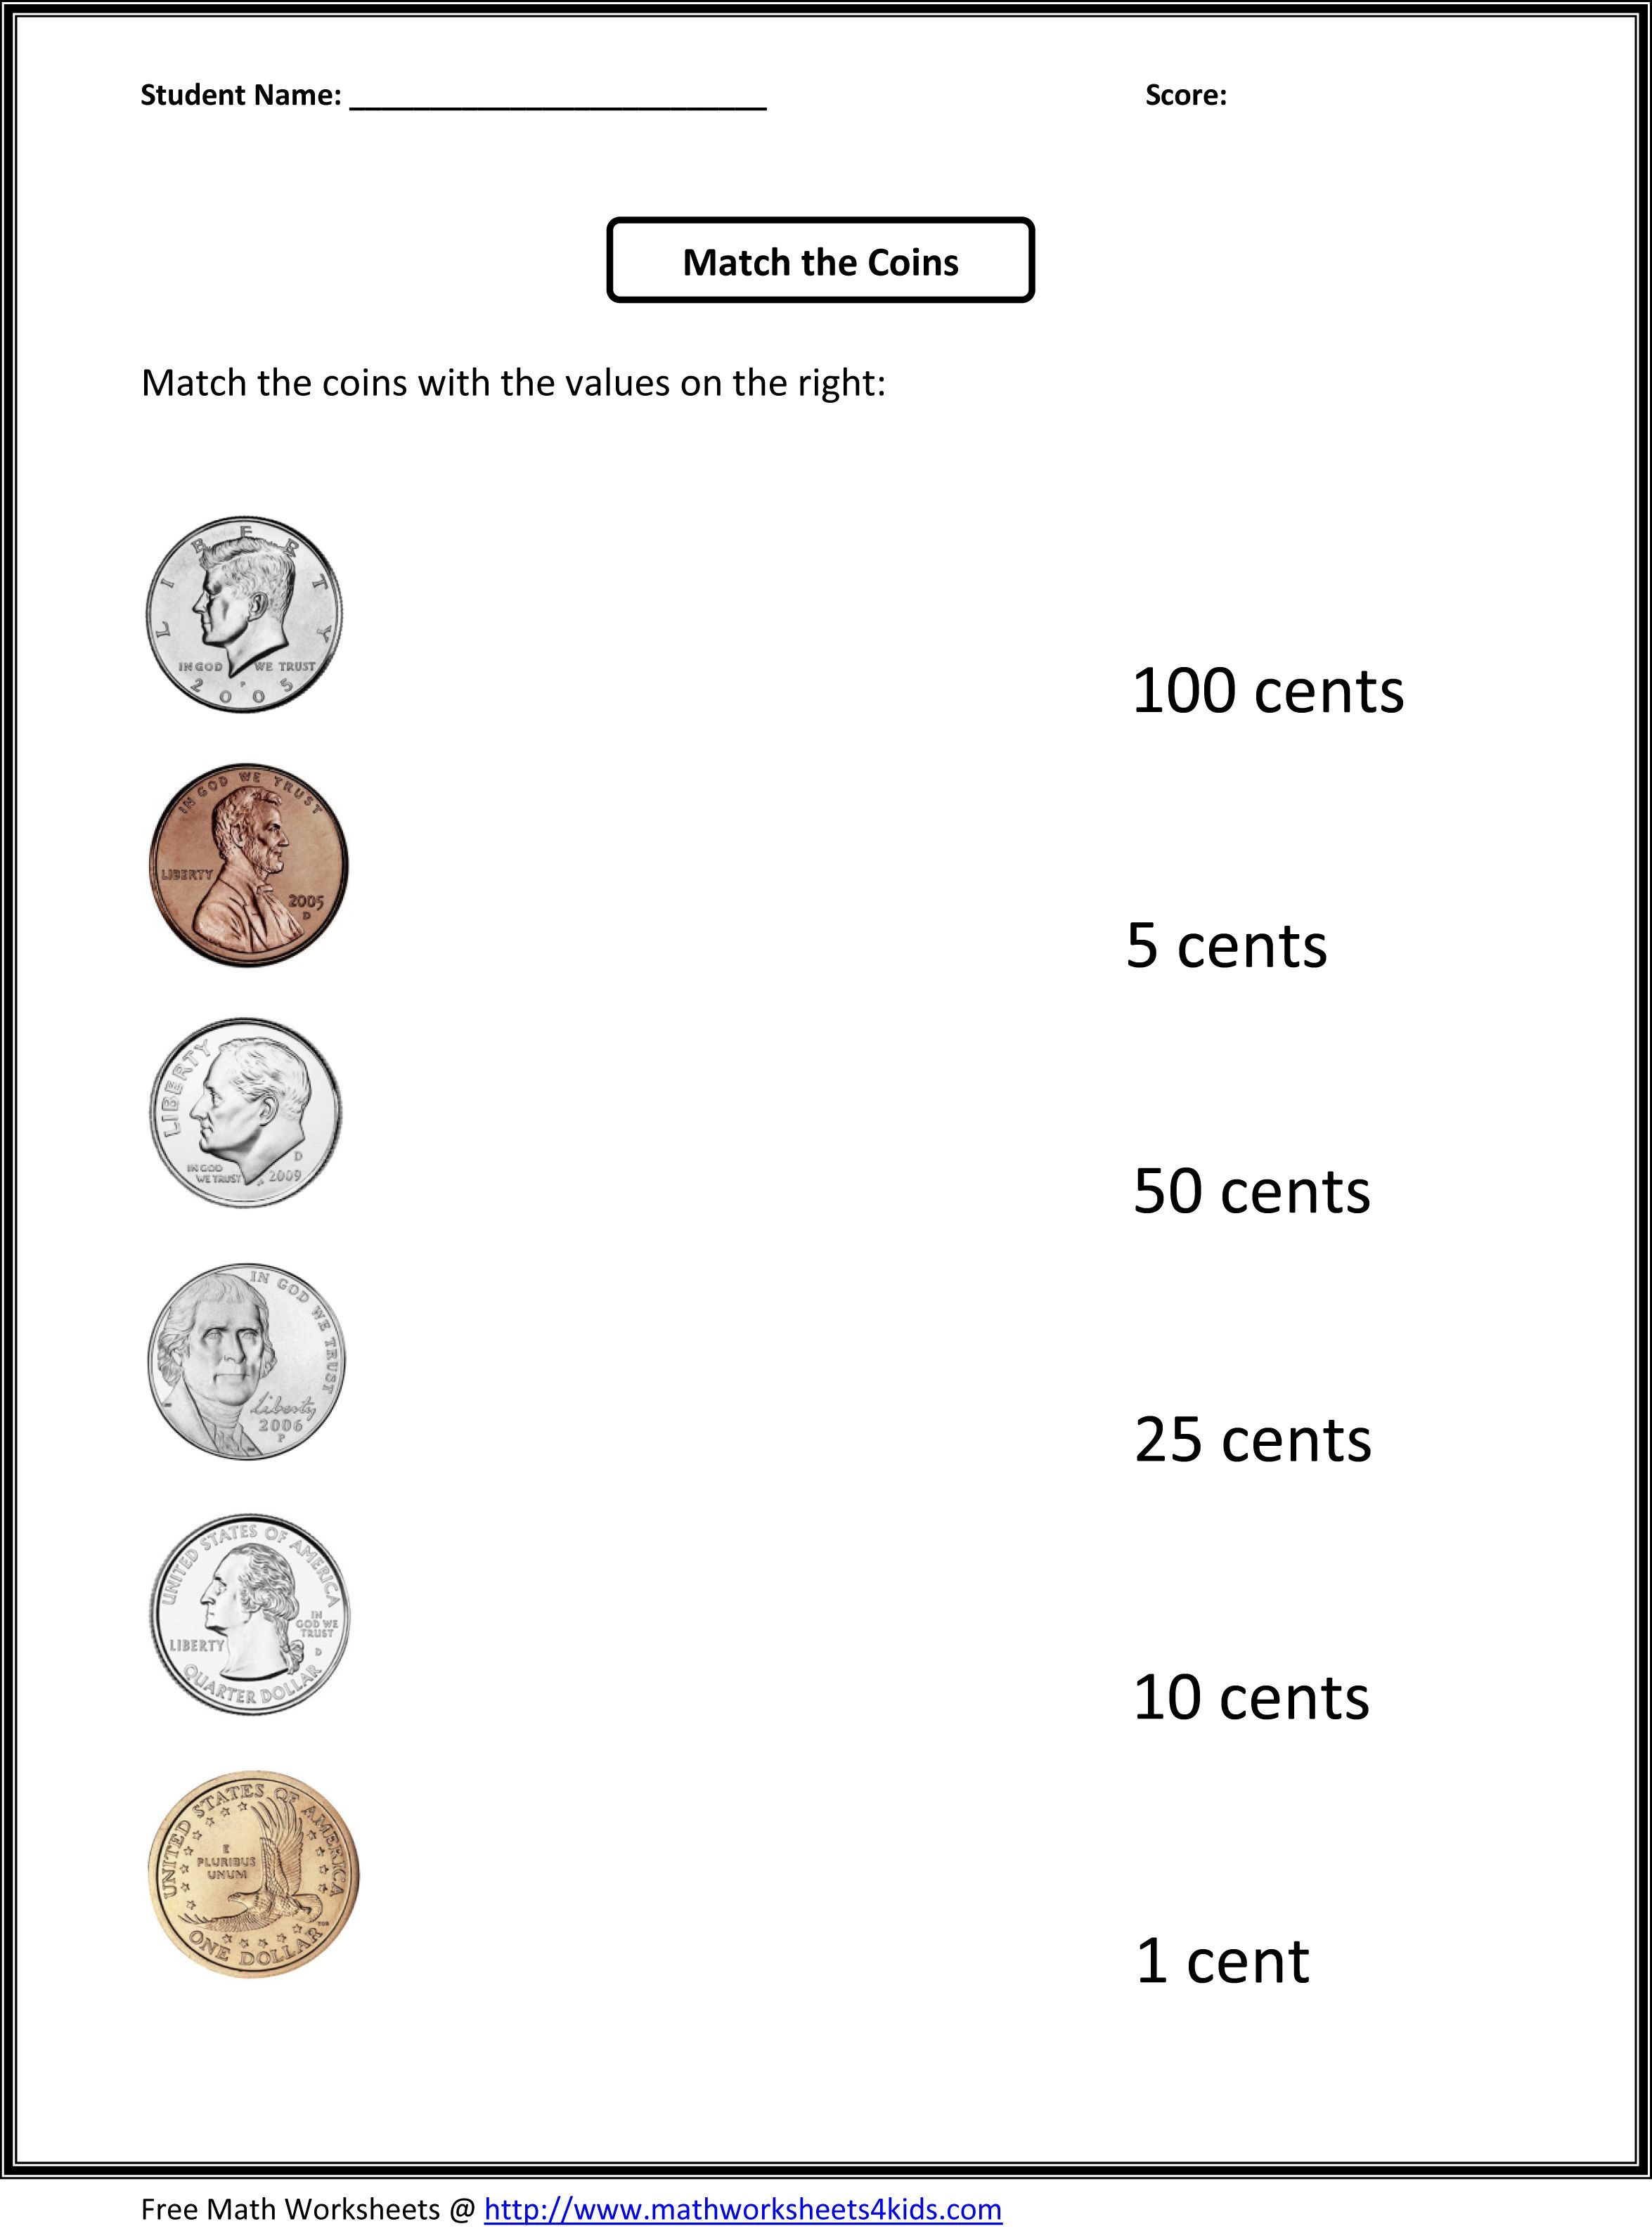 Free 1St Grade Worksheets | Match The Coins And Its Values - Free Printable Telling Time Worksheets For 1St Grade